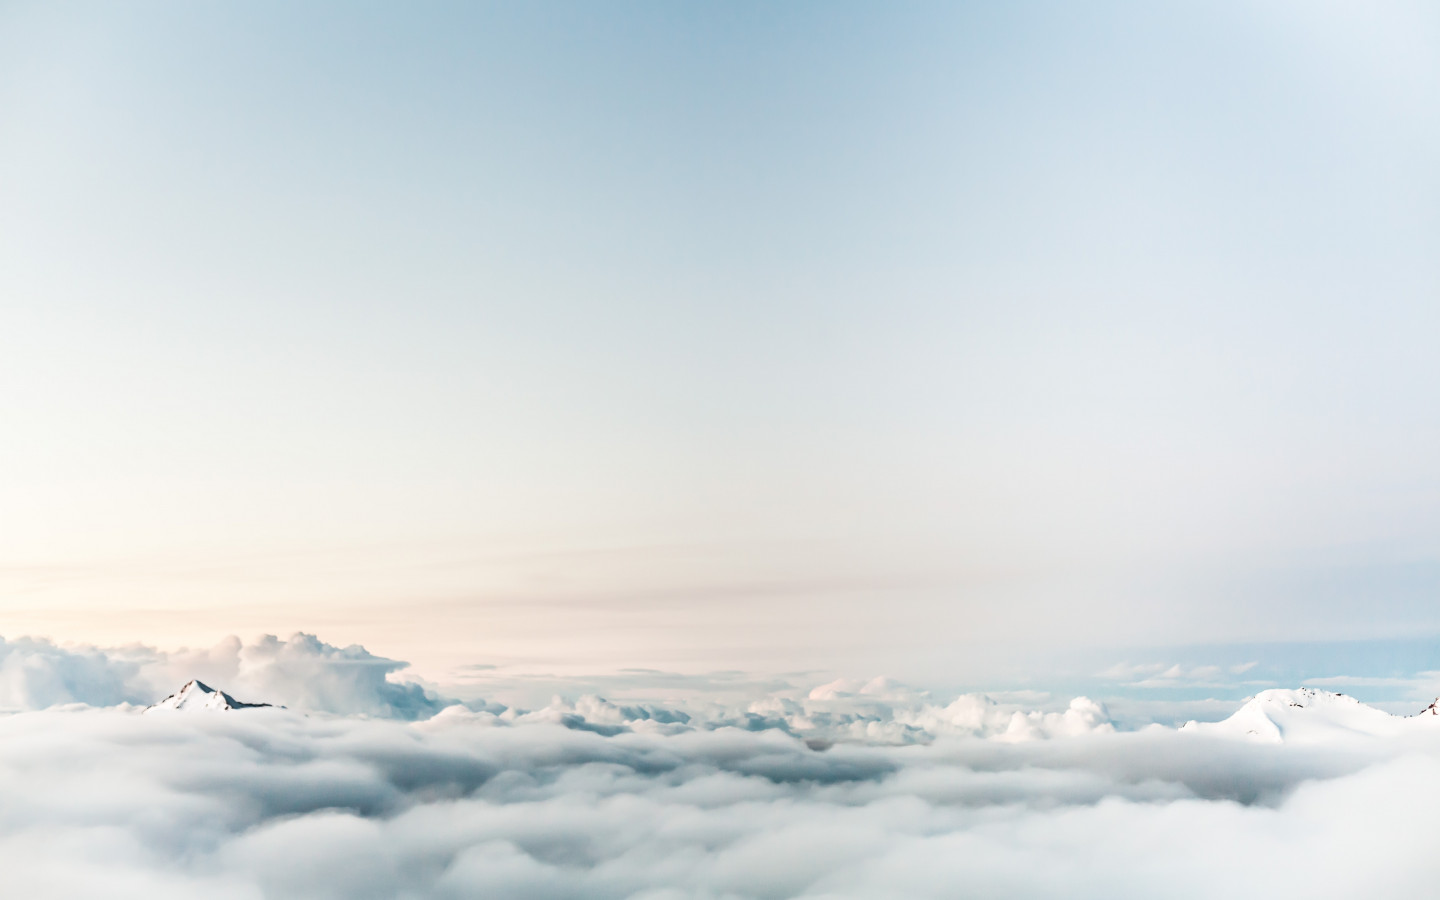 Floating on clouds | 1440x900 wallpaper